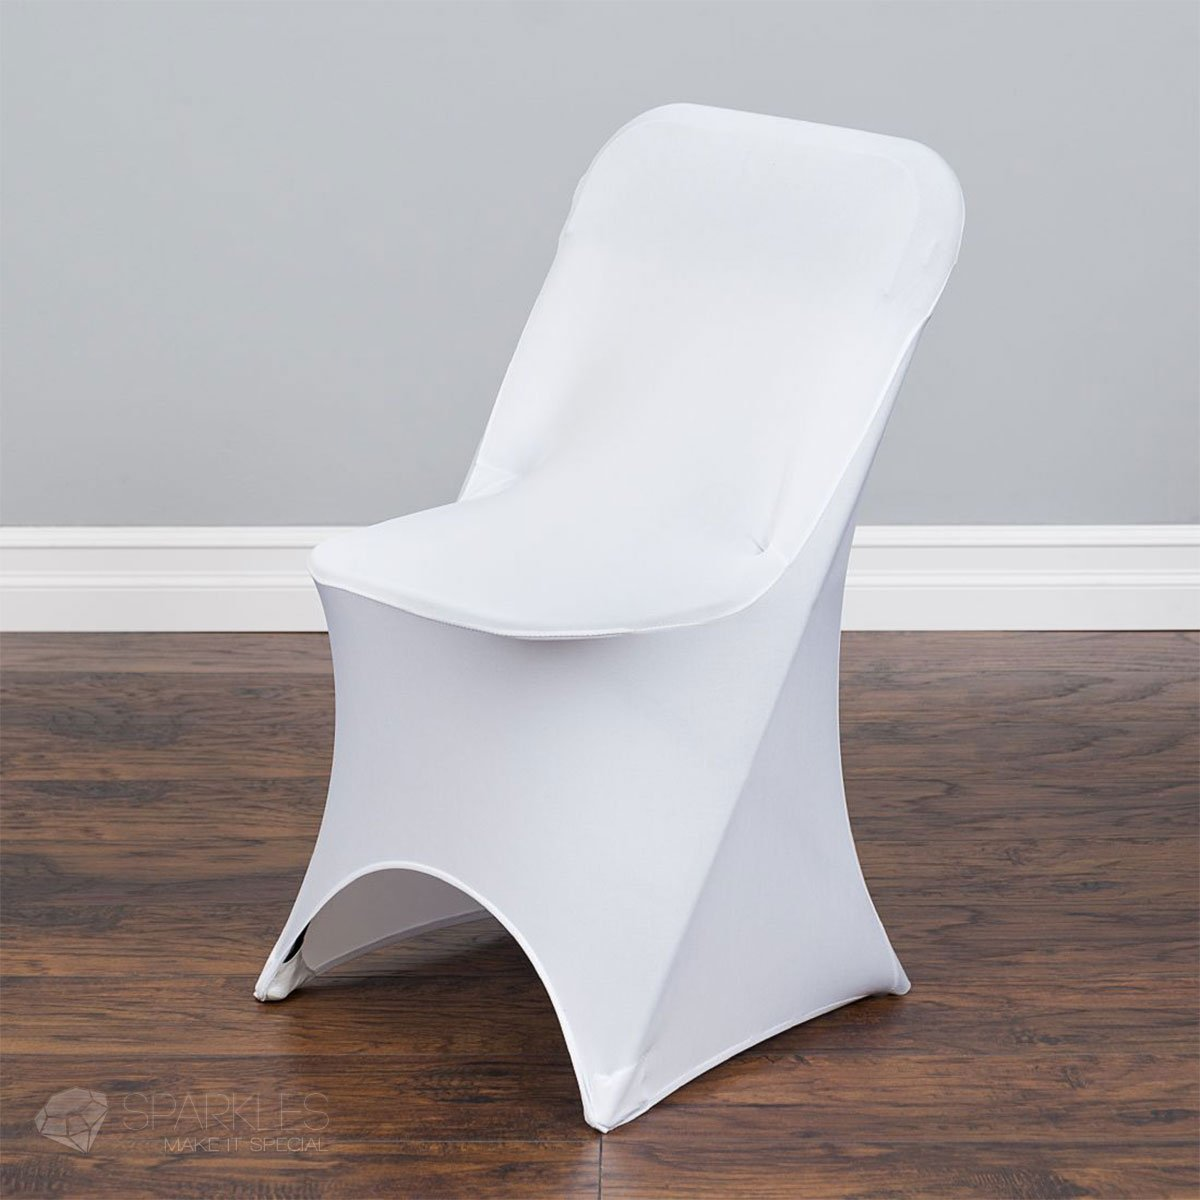 Sparkles Make It Special 50 pc Spandex Folding Arched Front Chair Covers - Wedding Reception Banquet Party Restaurant Universal Fitted - White